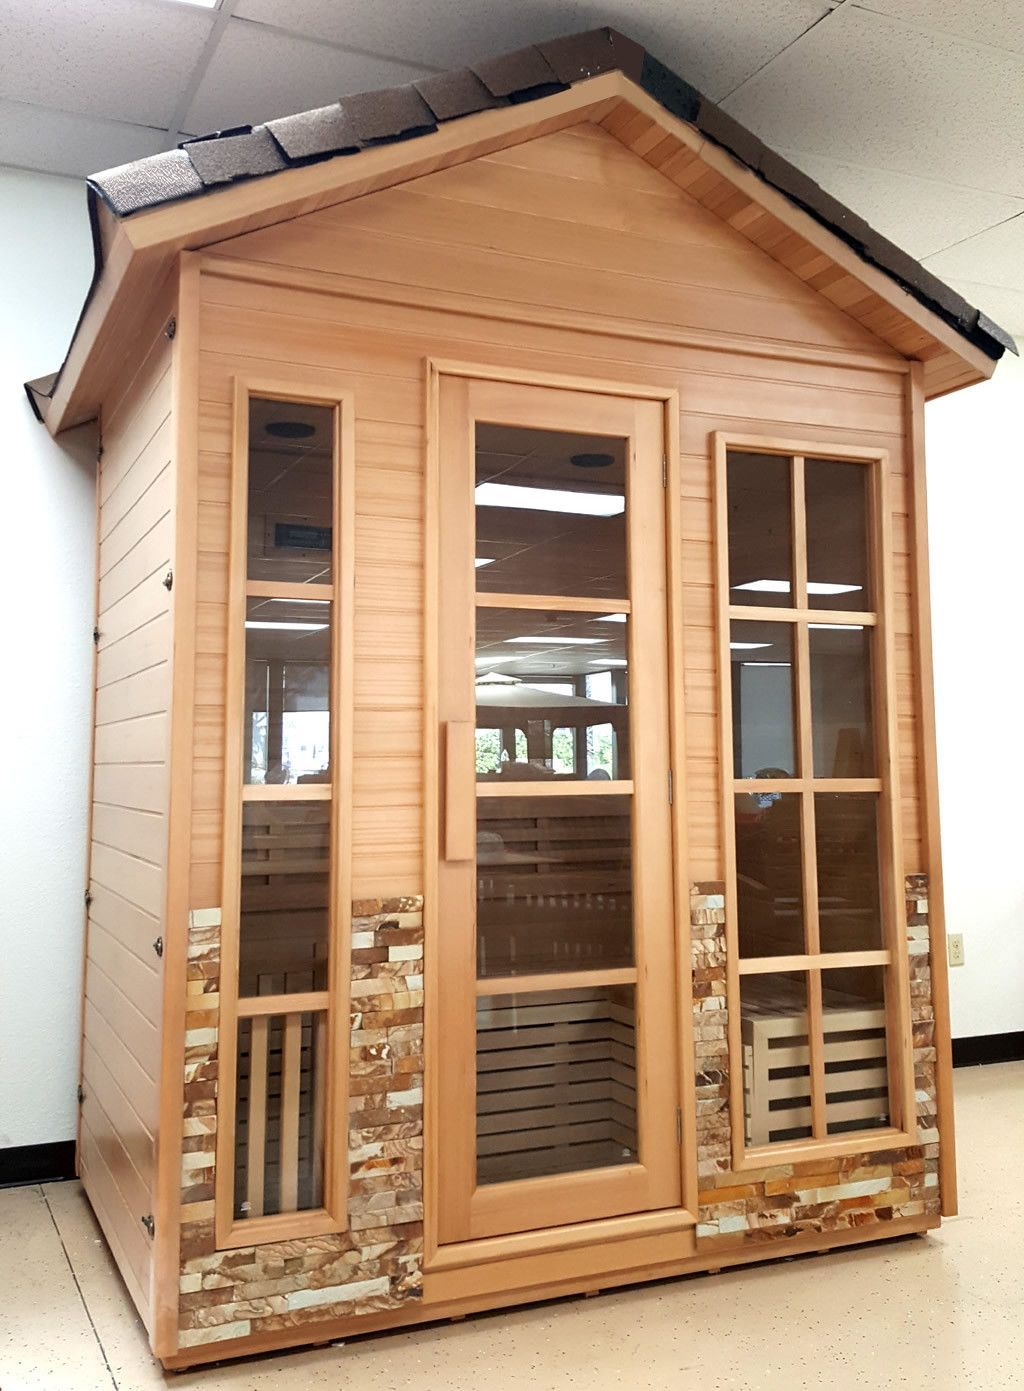 Deluxe Outdoor Canadian Hemlock Wet Dry Swedish Sauna Spa Features Specifications 100 Factory Sealed New In Box Not Refurbished